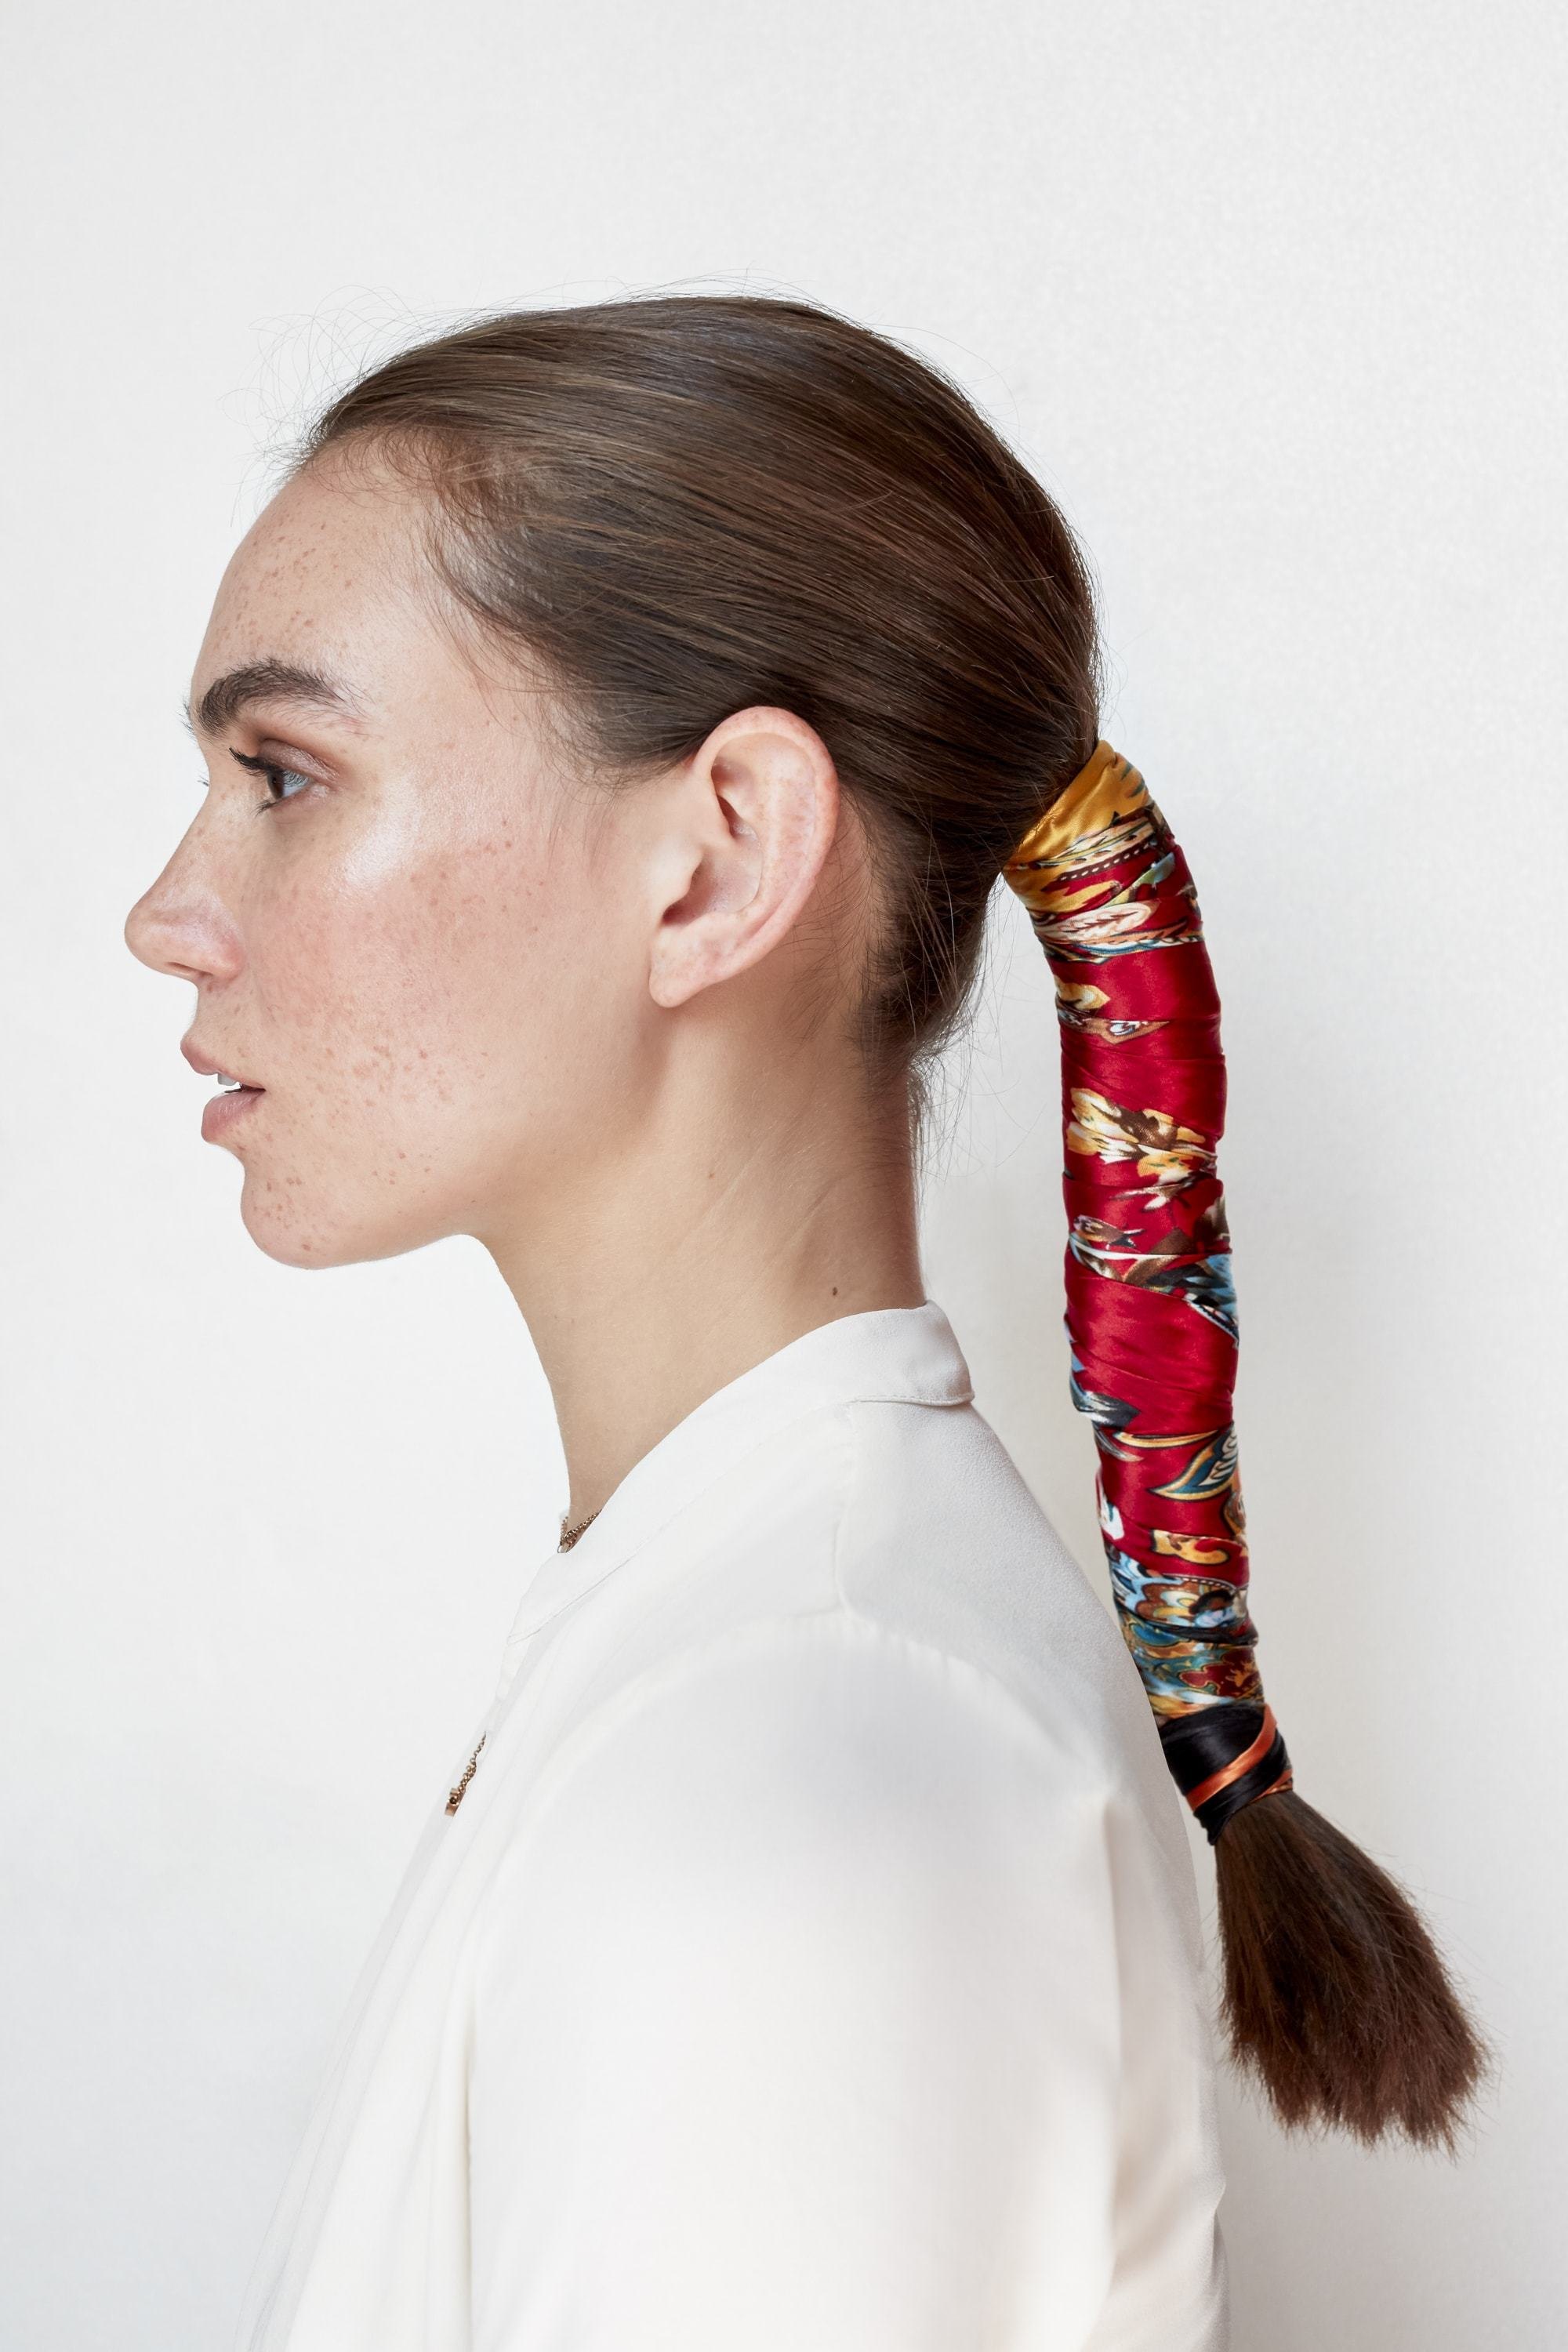 Christmas hairstyles: Brunette model with long straight hair in low ponytail, wrapped with a red headscarf wearing a white top.